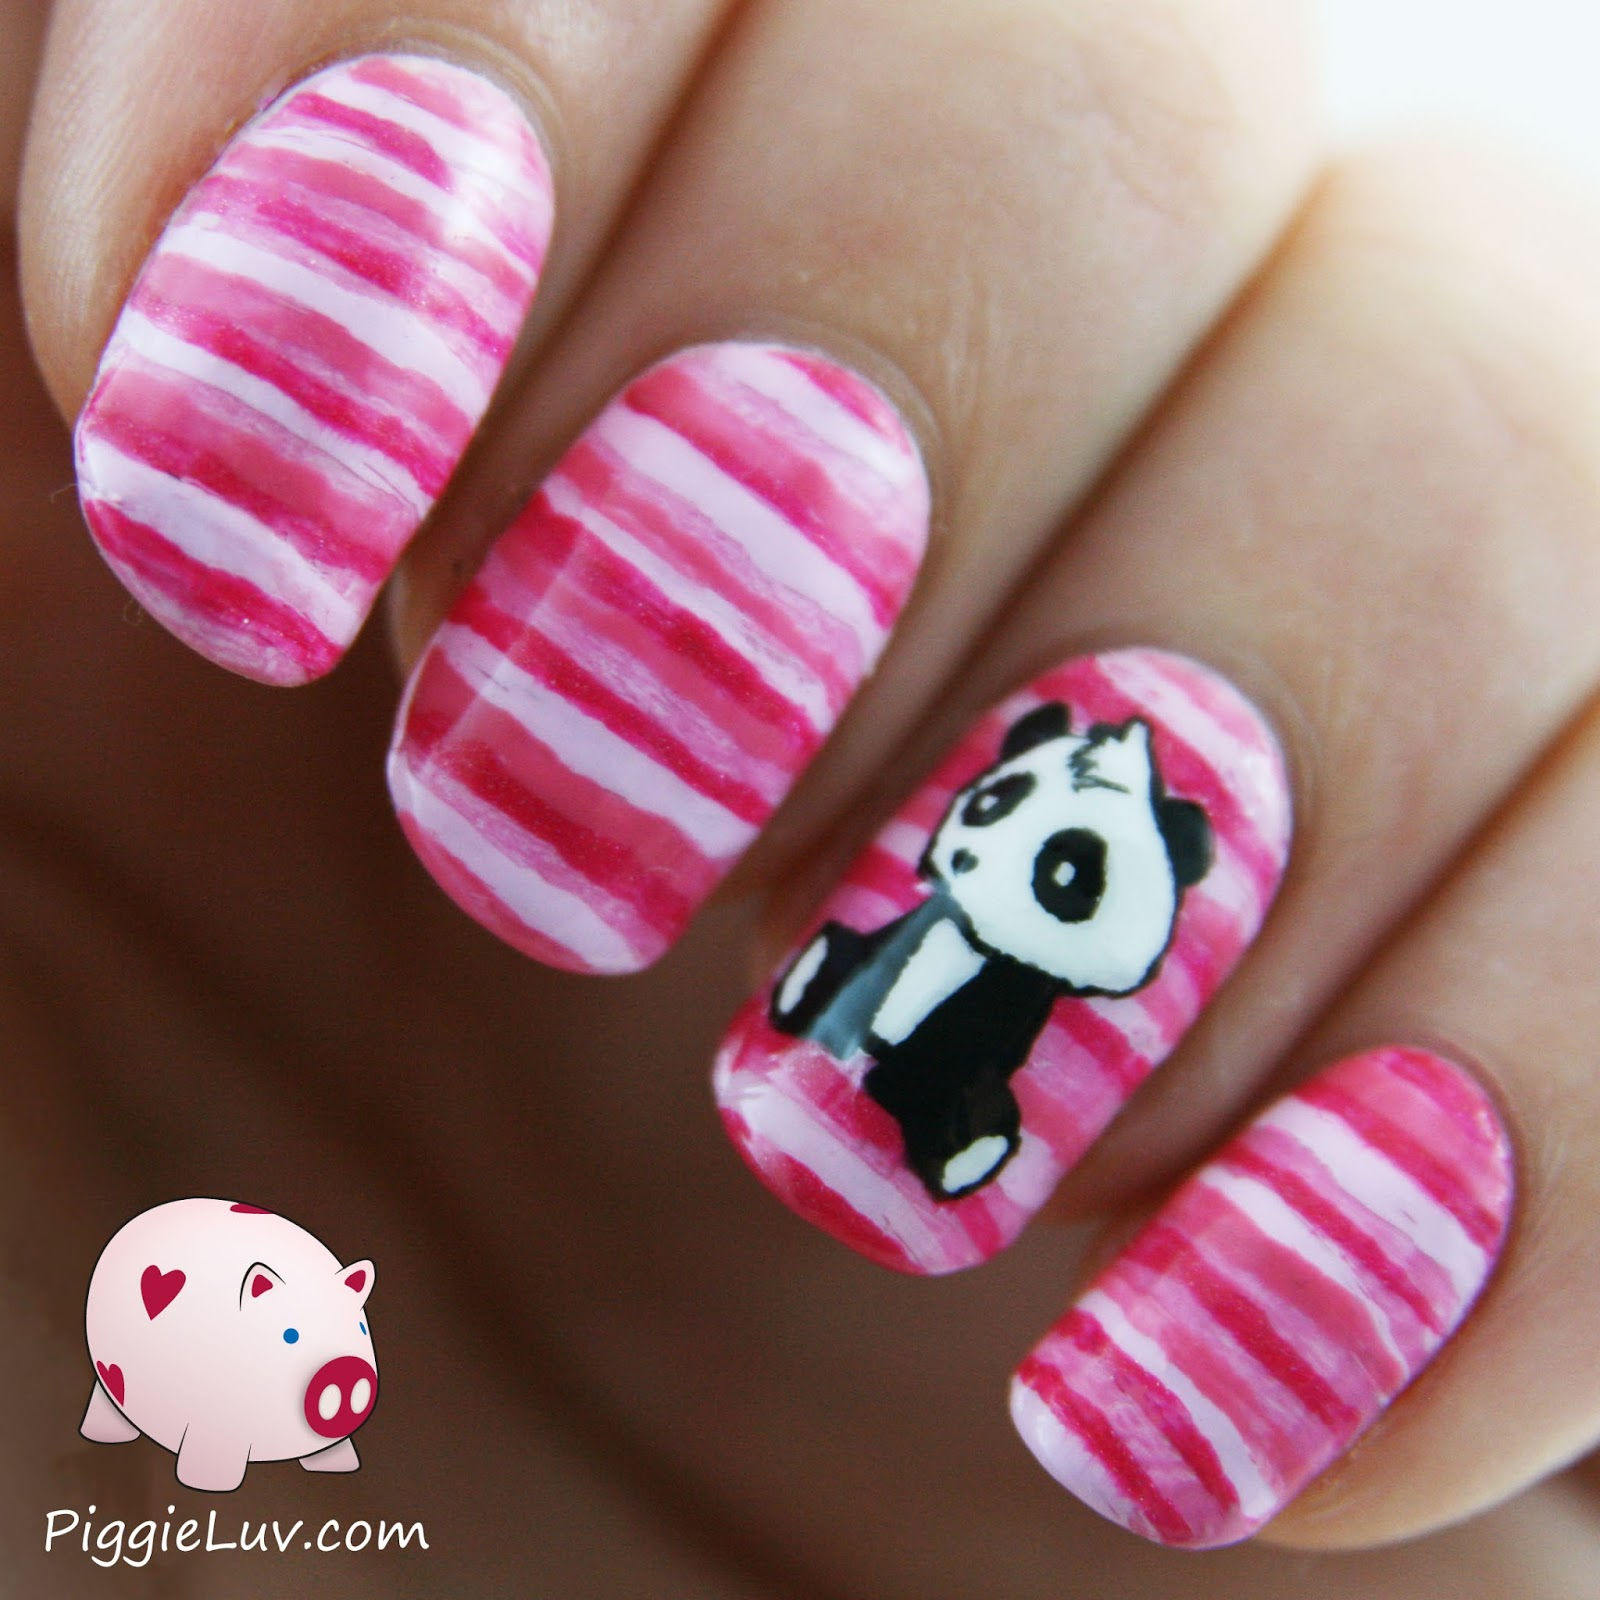 Piggieluv sad panda nail art i have a cute little hand painted panda guy for you today the background was a fail turned into something else and then the panda just fit perfectly prinsesfo Image collections